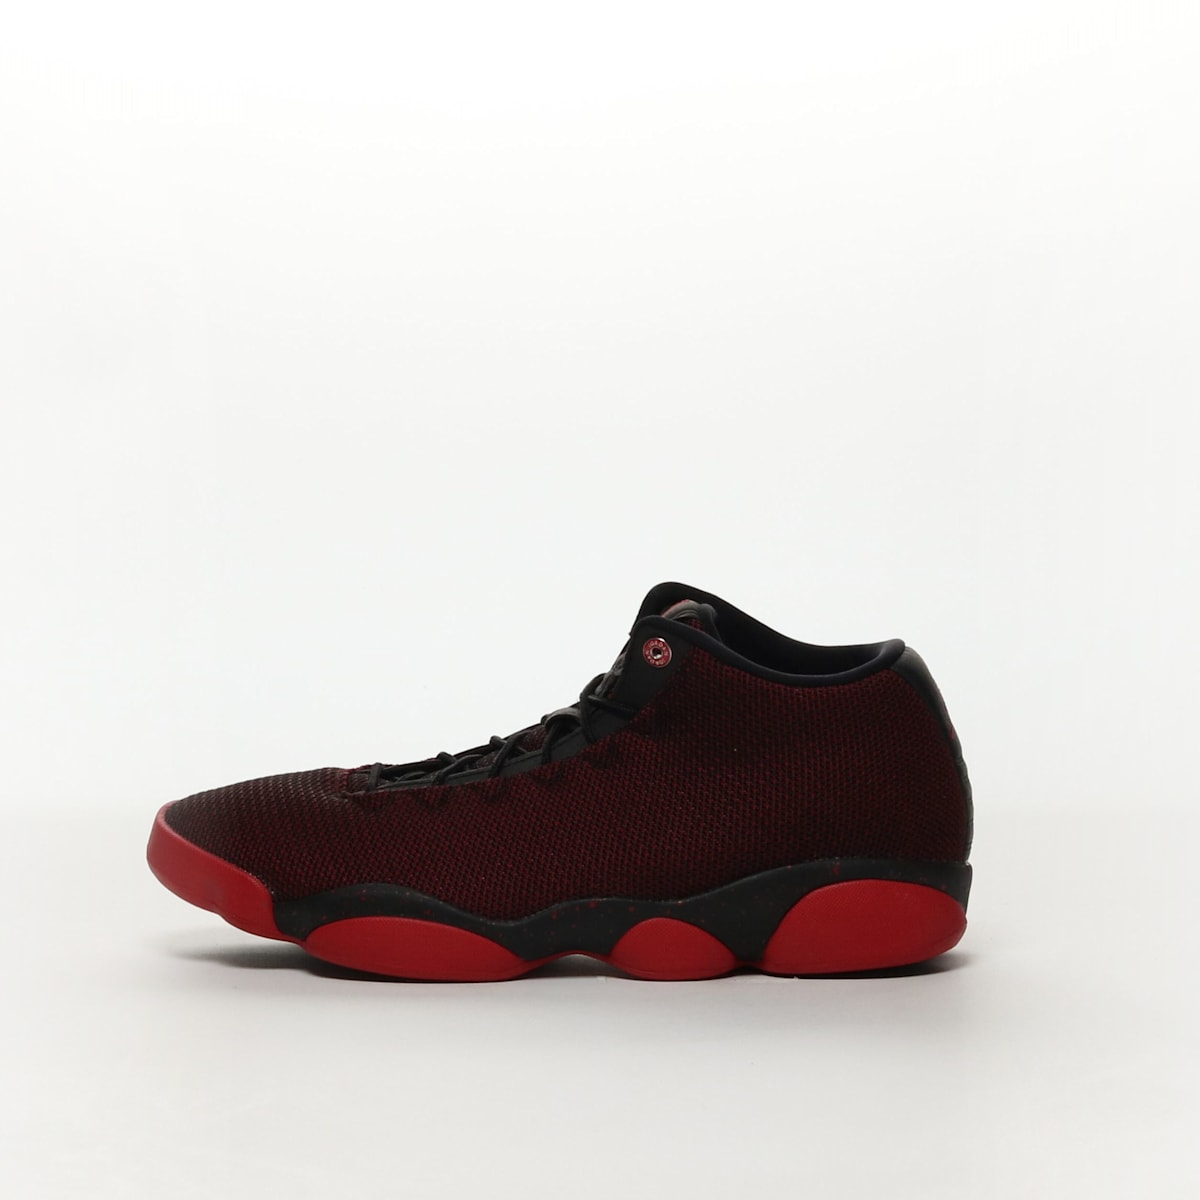 201b1716c Men s Jordan Horizon Low Shoe - BLACK GYM RED-WHITE – Resku